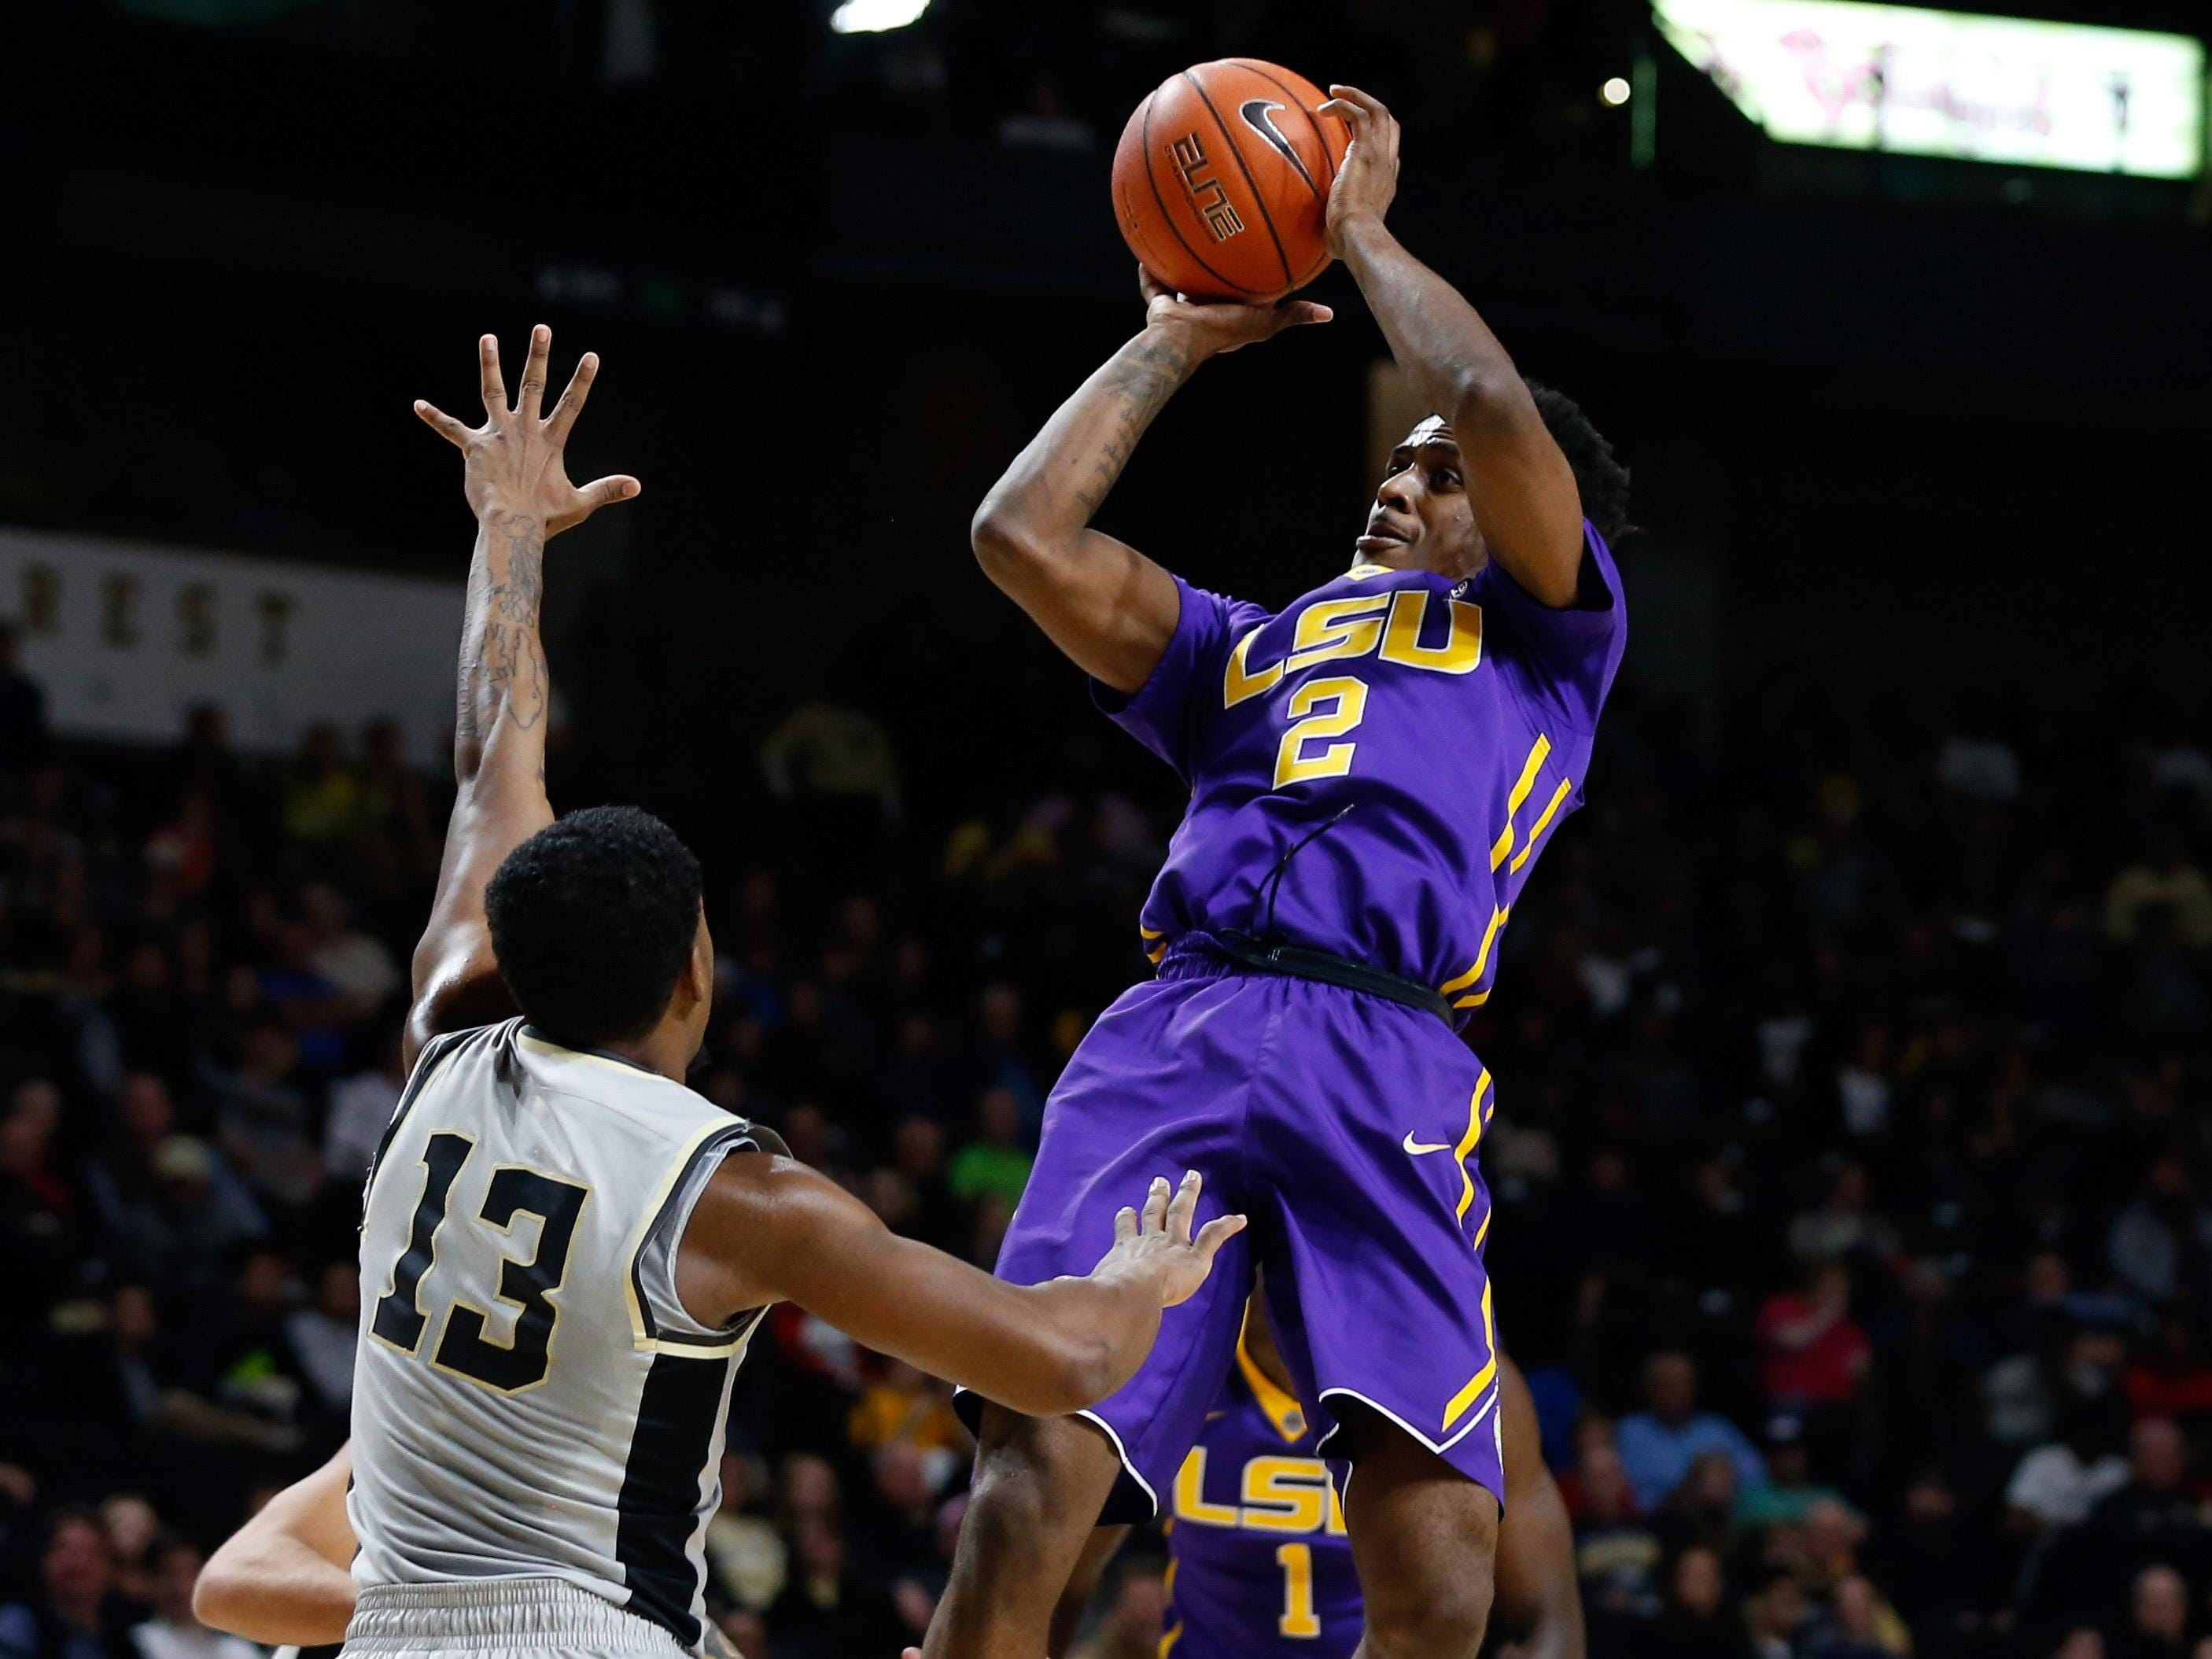 LSU Tigers guard Antonio Blakeney (2) shoots the ball over Wake Forest Demon Deacons guard Bryant Crawford (13) in the second half at Lawrence Joel Veterans Memorial Coliseum. Wake defeated LSU 110-76.